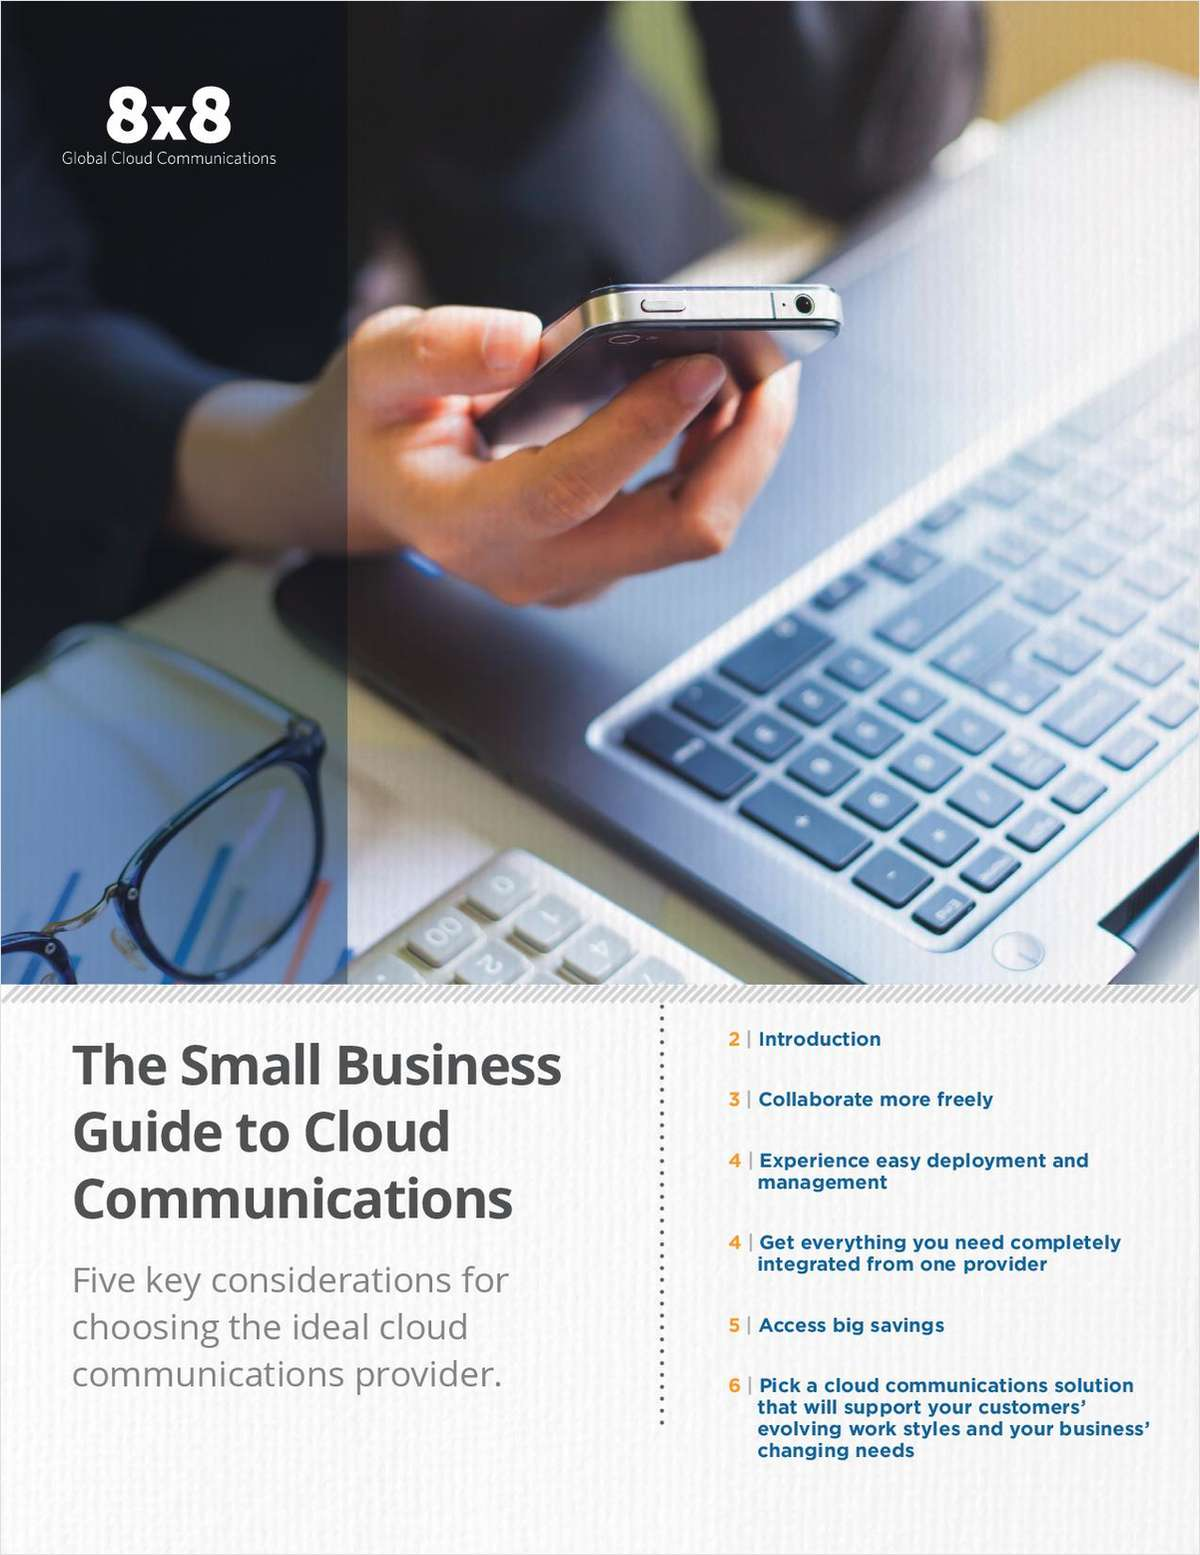 The Small Business Guide to Cloud Communications: 5 Key Considerations for Choosing the Ideal Cloud Communications Provider